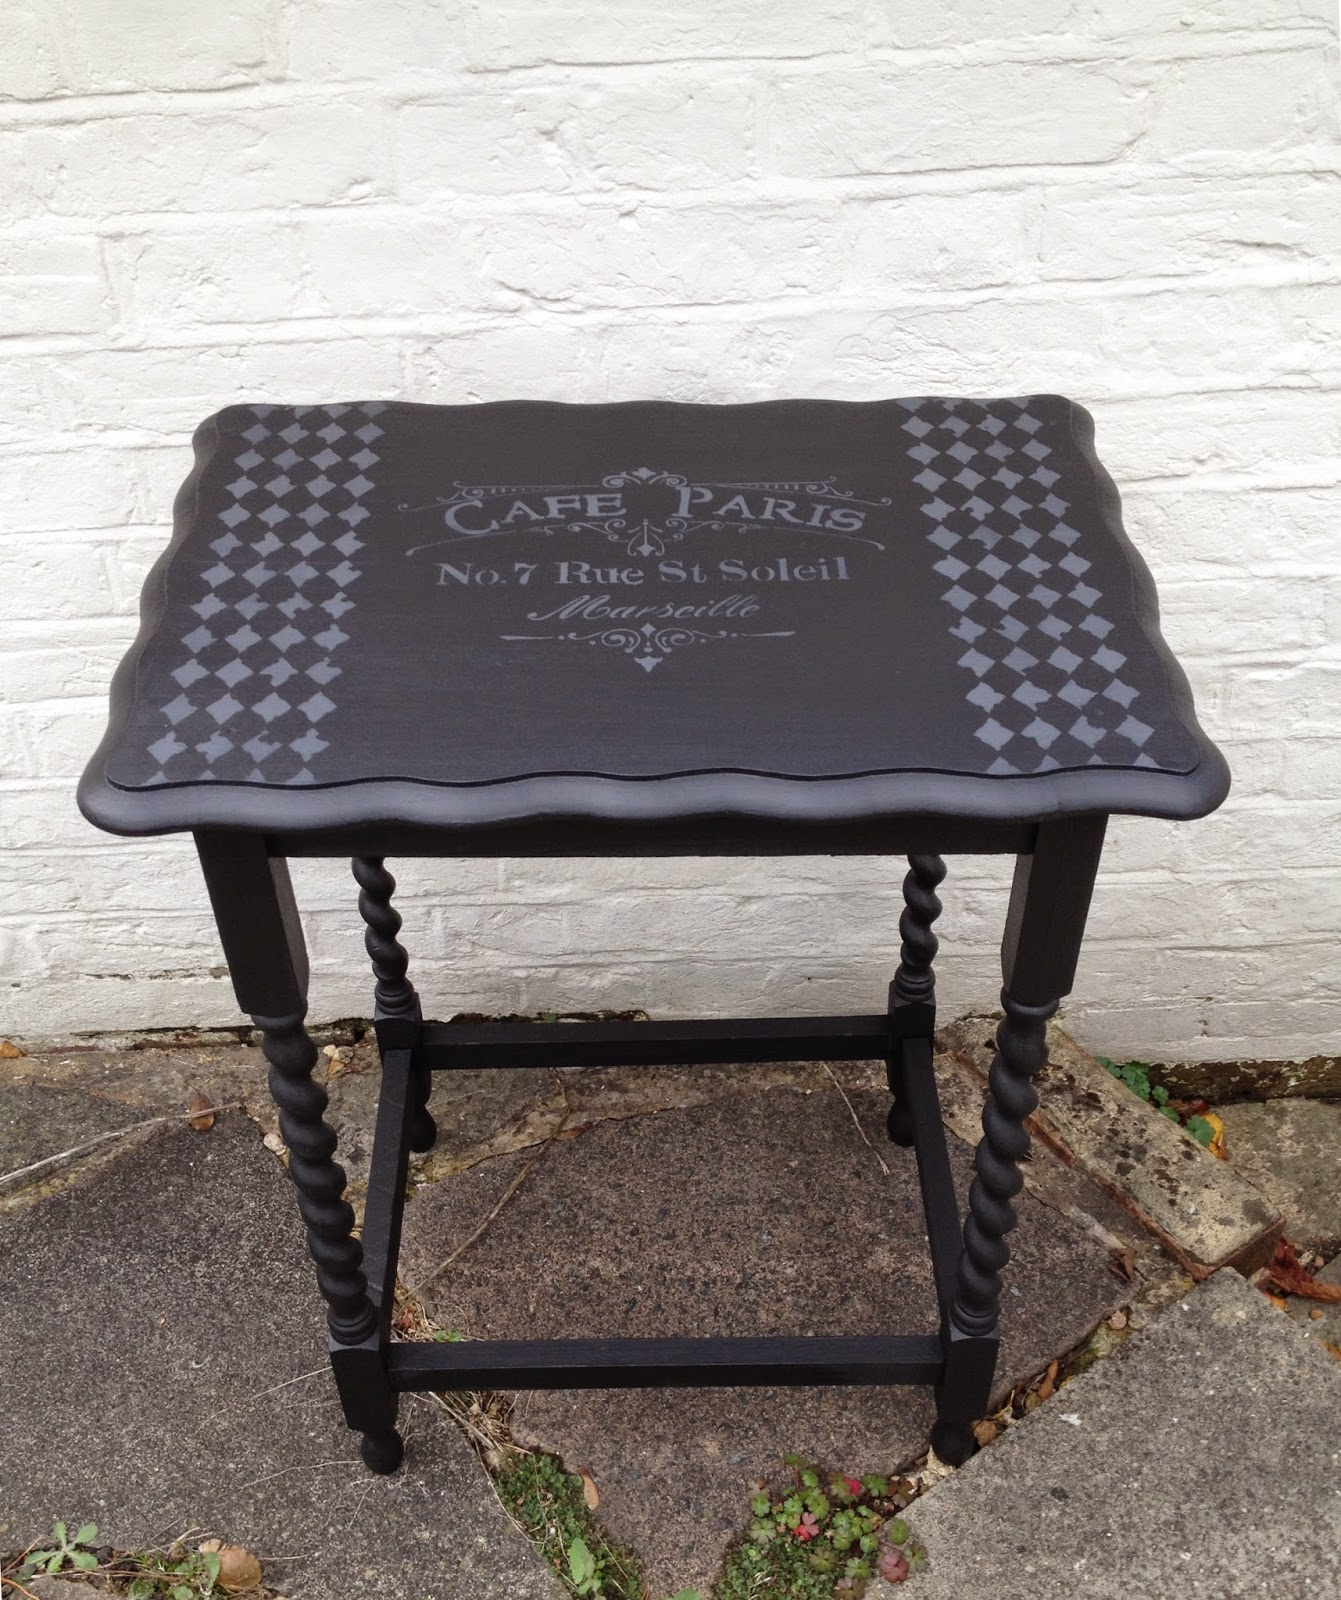 http://spesh-chic.blogspot.co.uk/2014/10/le-table-noir.html